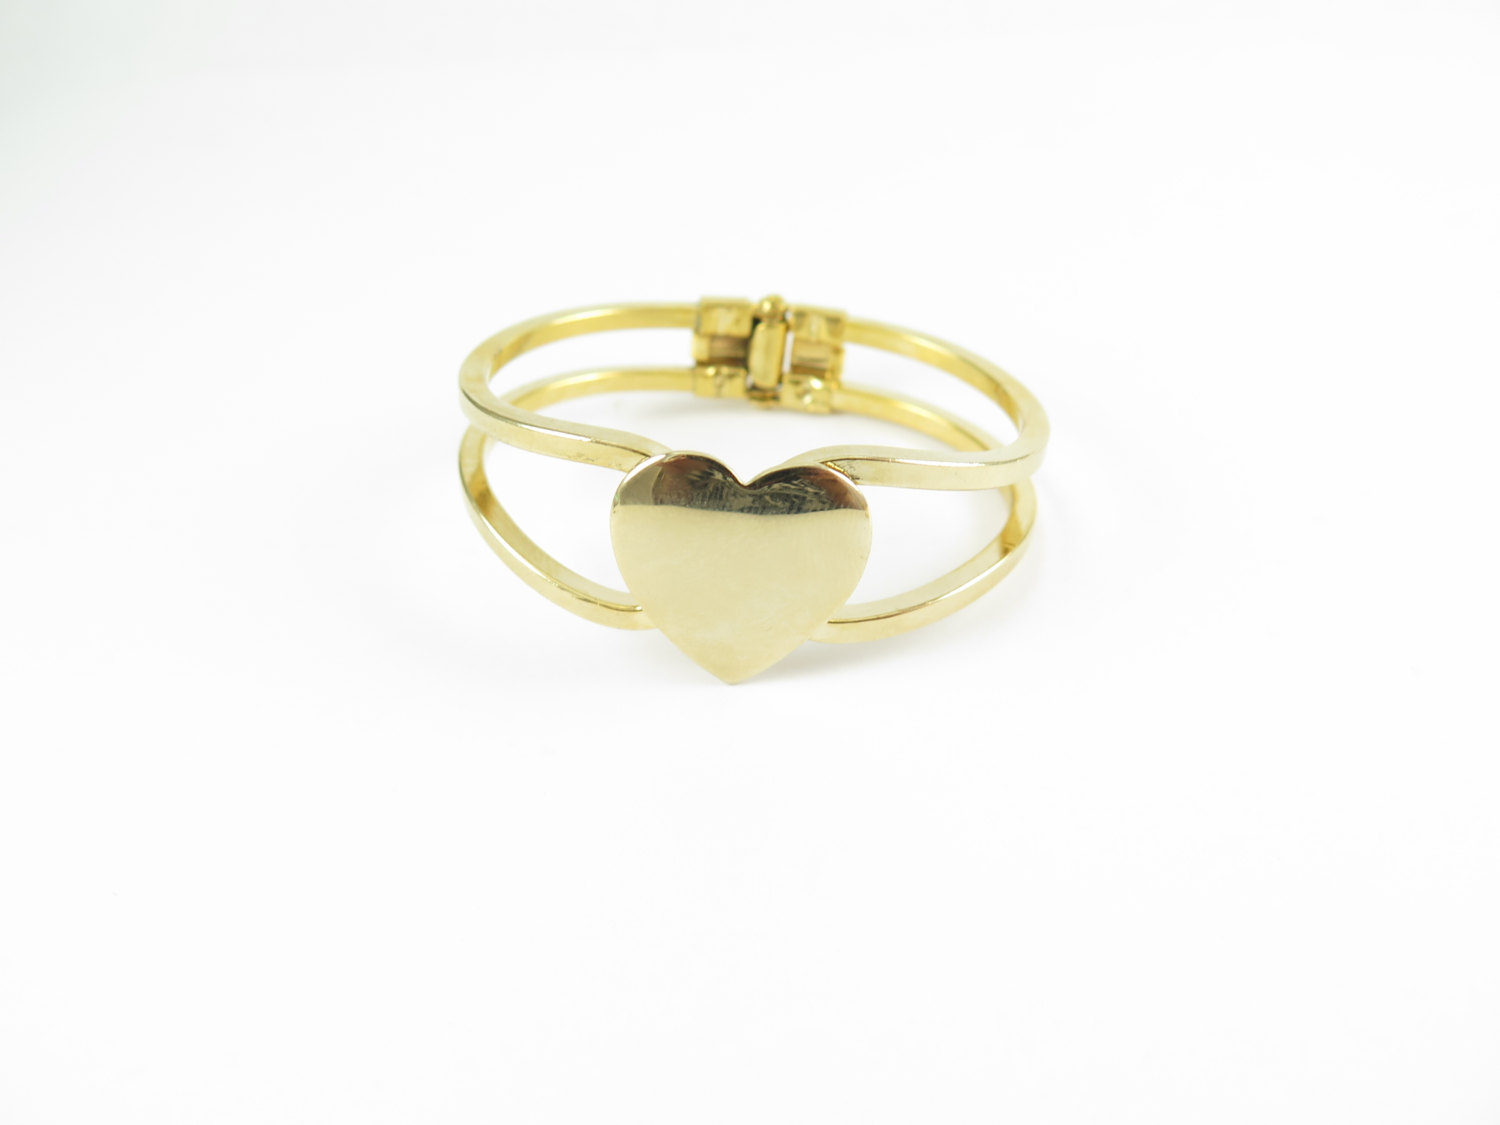 Gold Plated Engraving Heart Cuff Bracelet